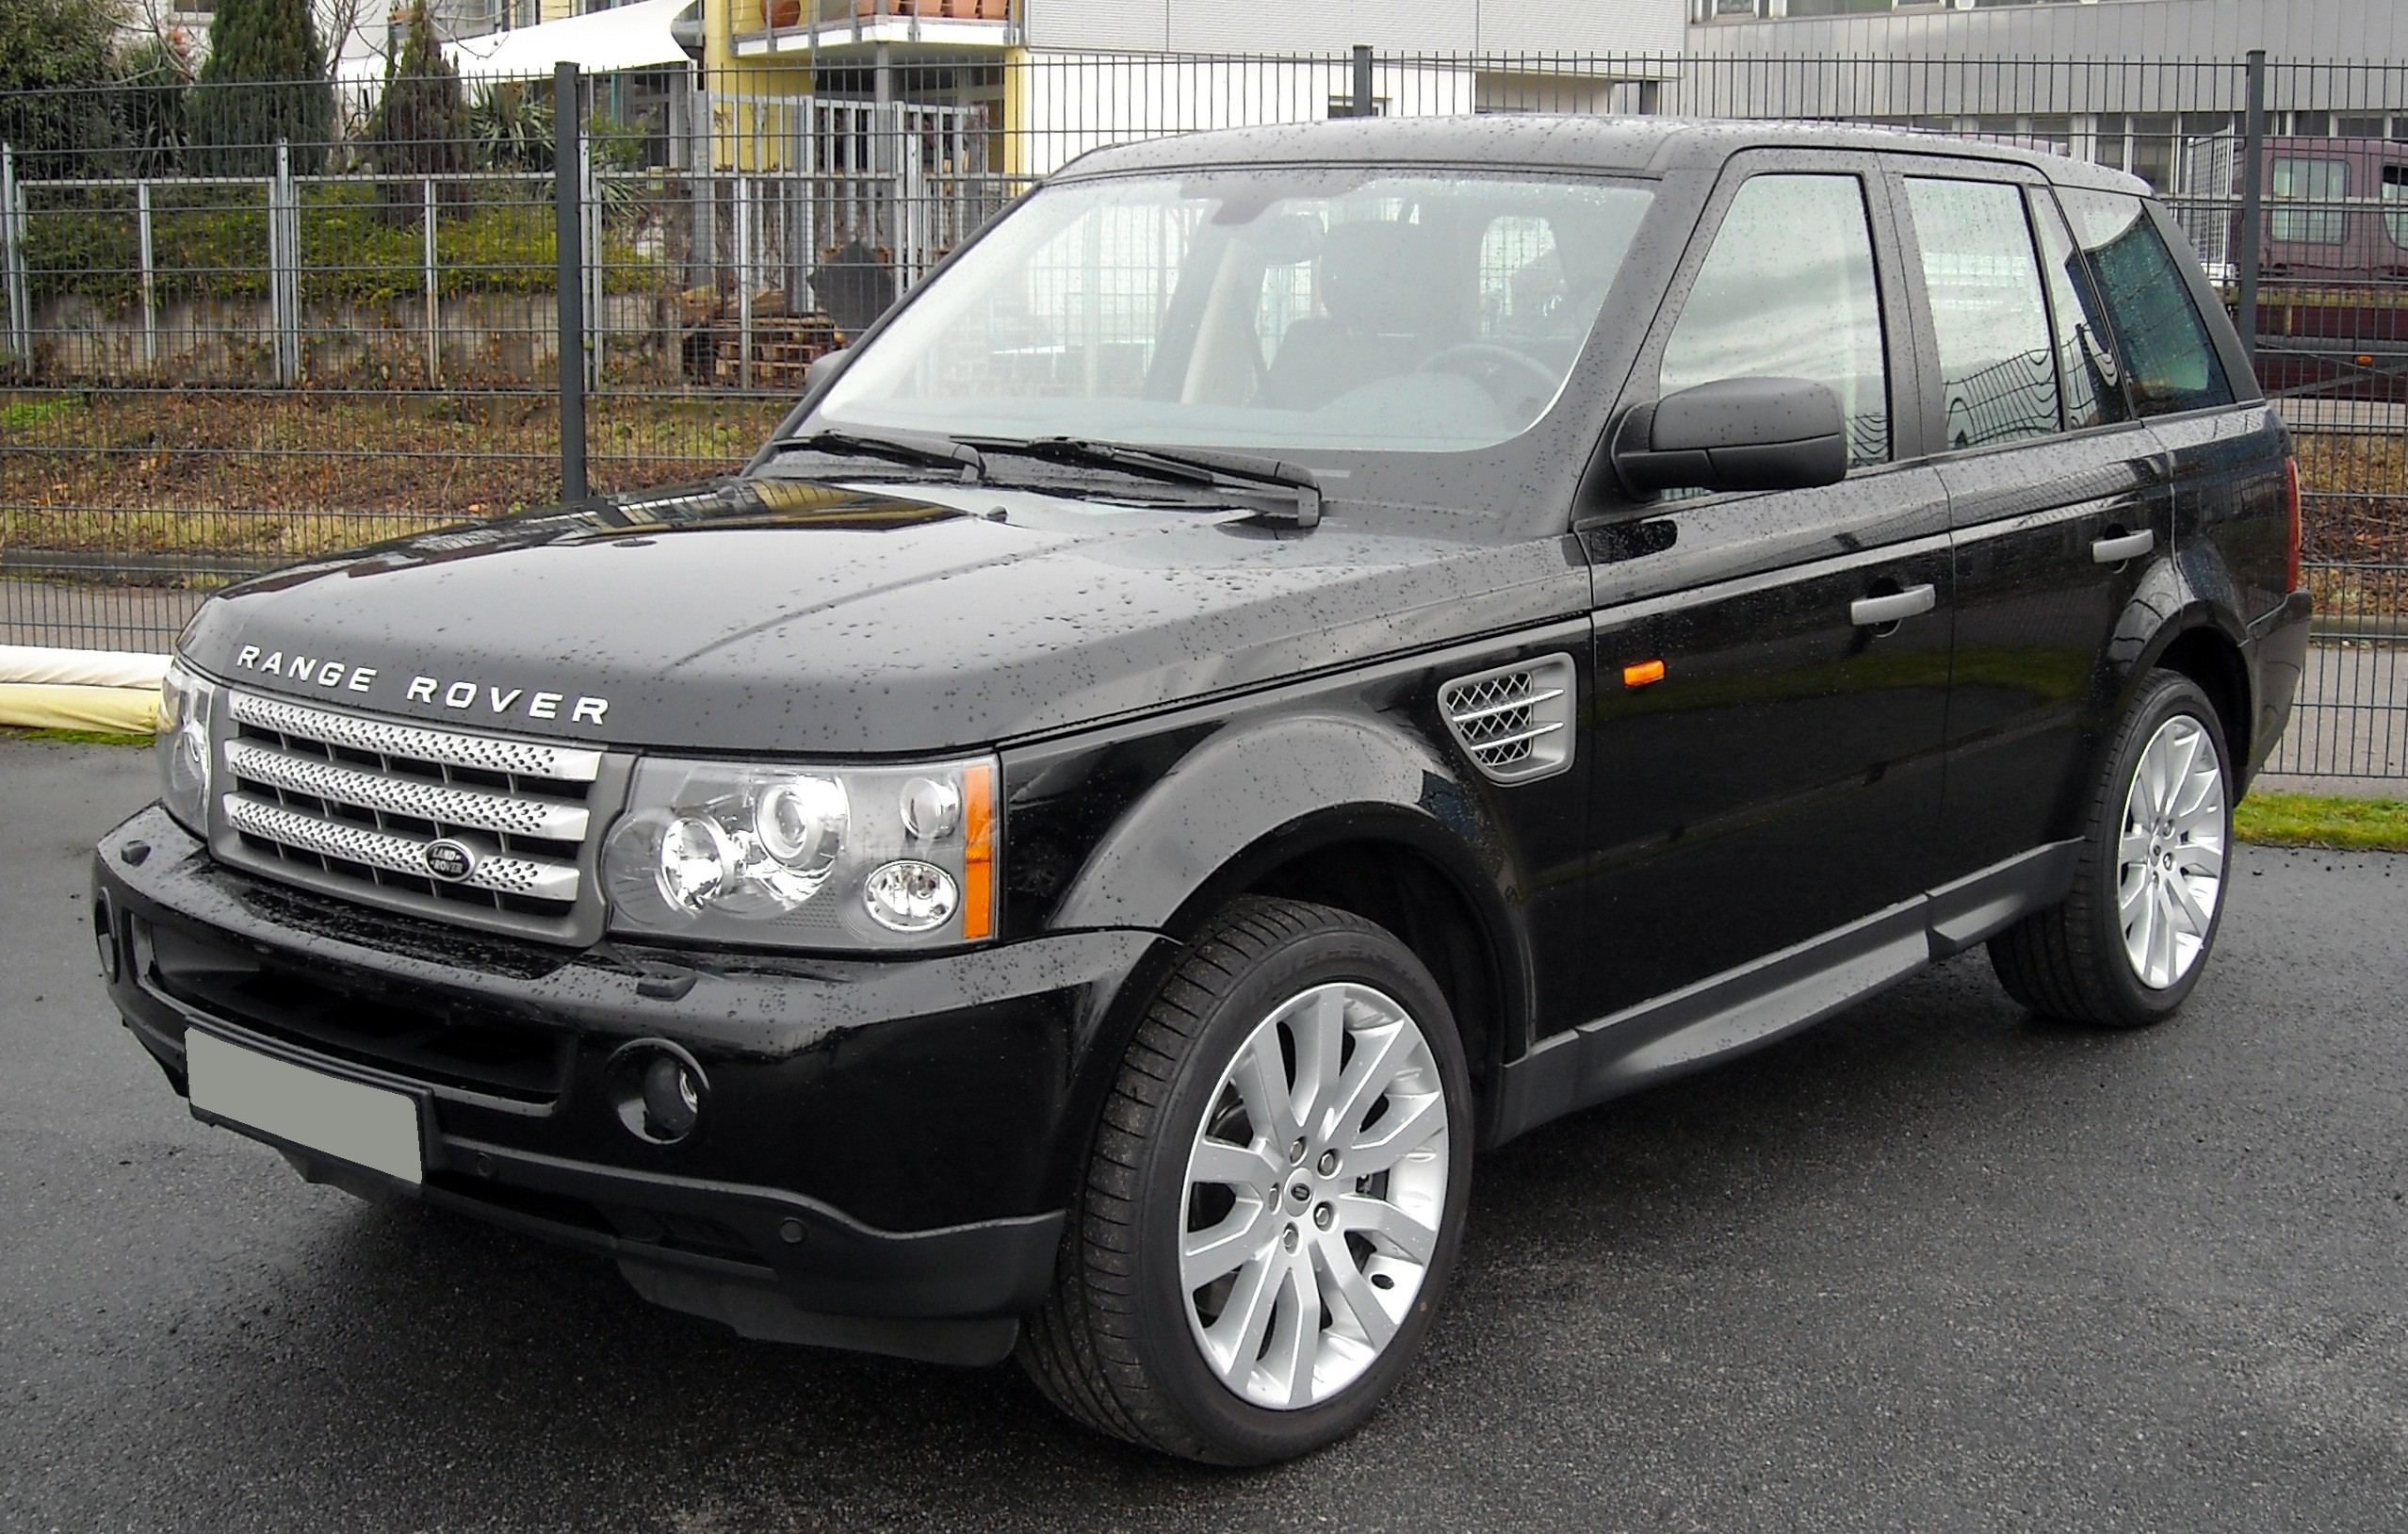 Description Range Rover Sport front 20081205.jpg